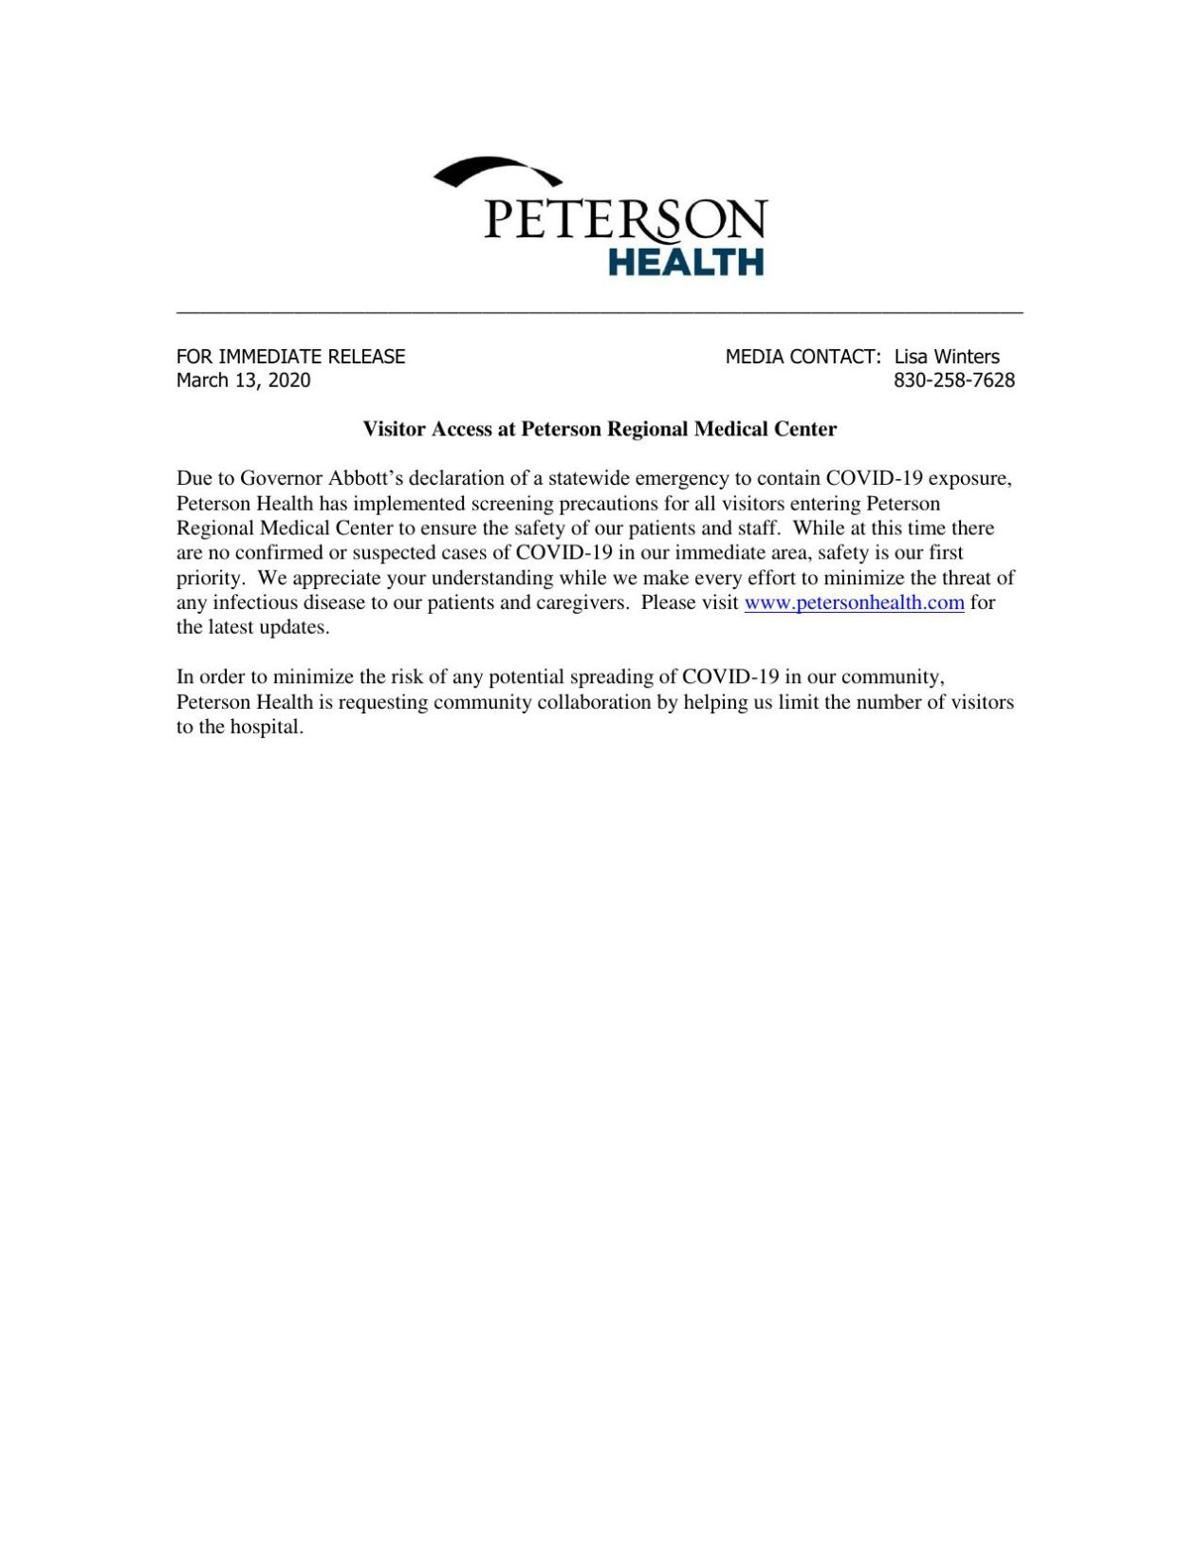 Statement from Peterson Health about visitor screenings